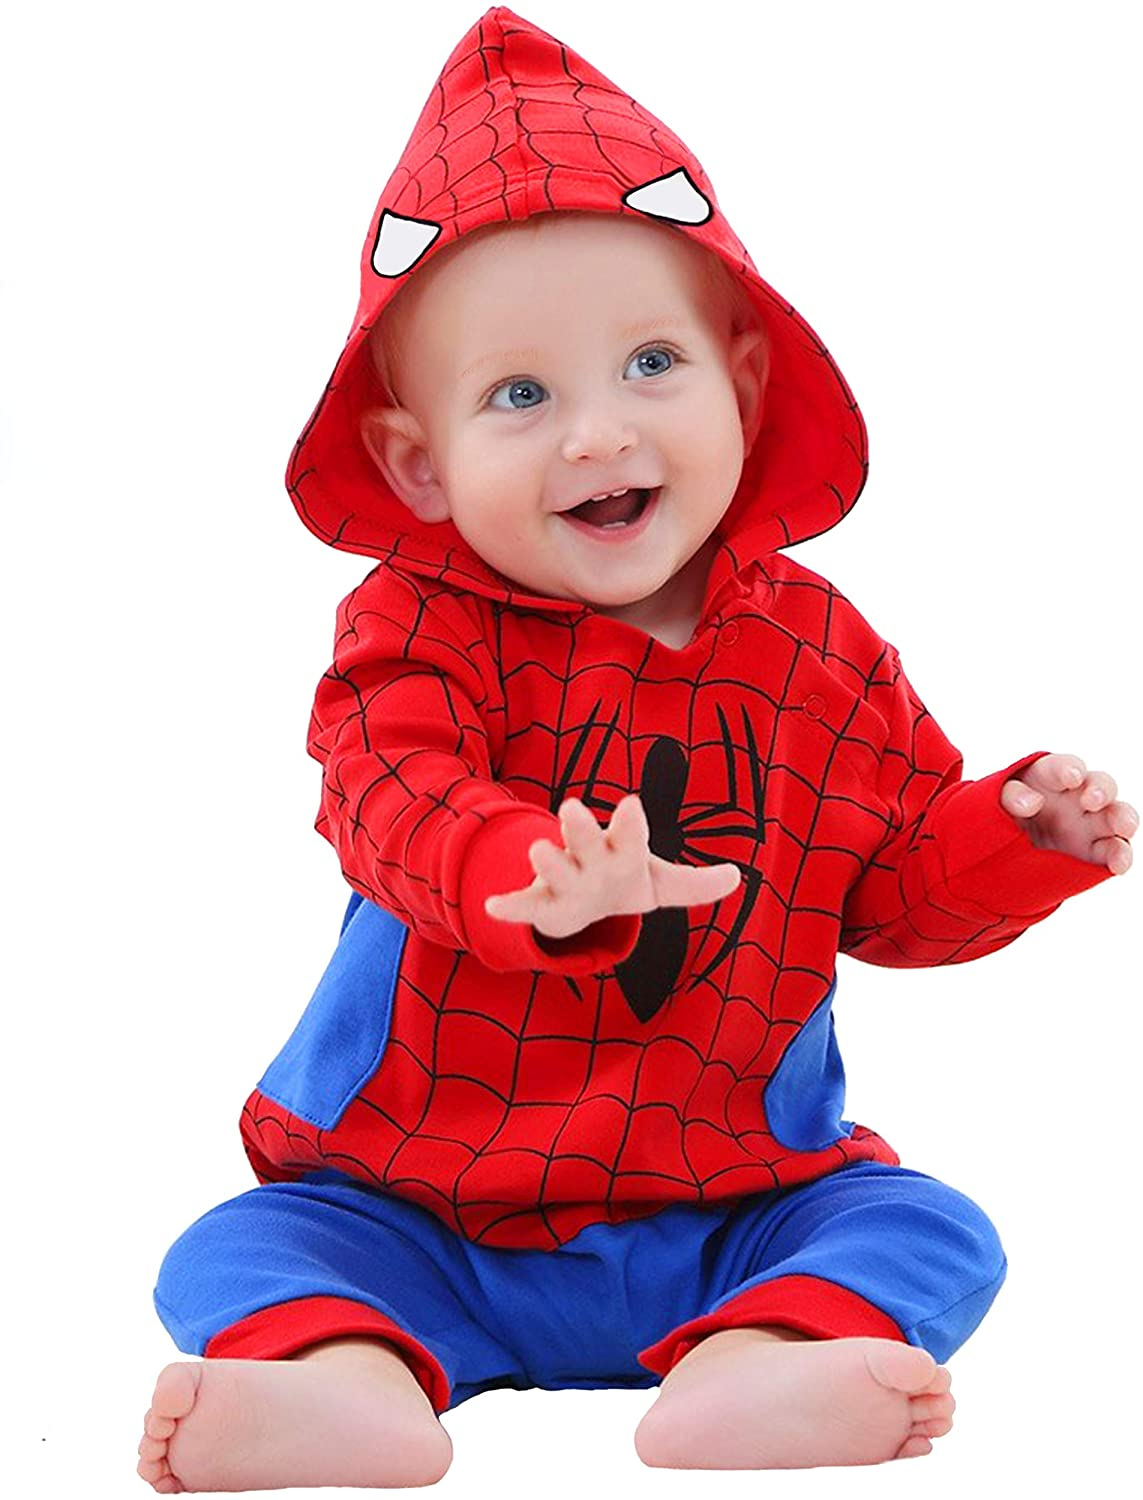 YuDanae Baby Cotton Superhero Funny Romper with Hat Cap Outfit Costume for Toddler Baby Aged 0-2